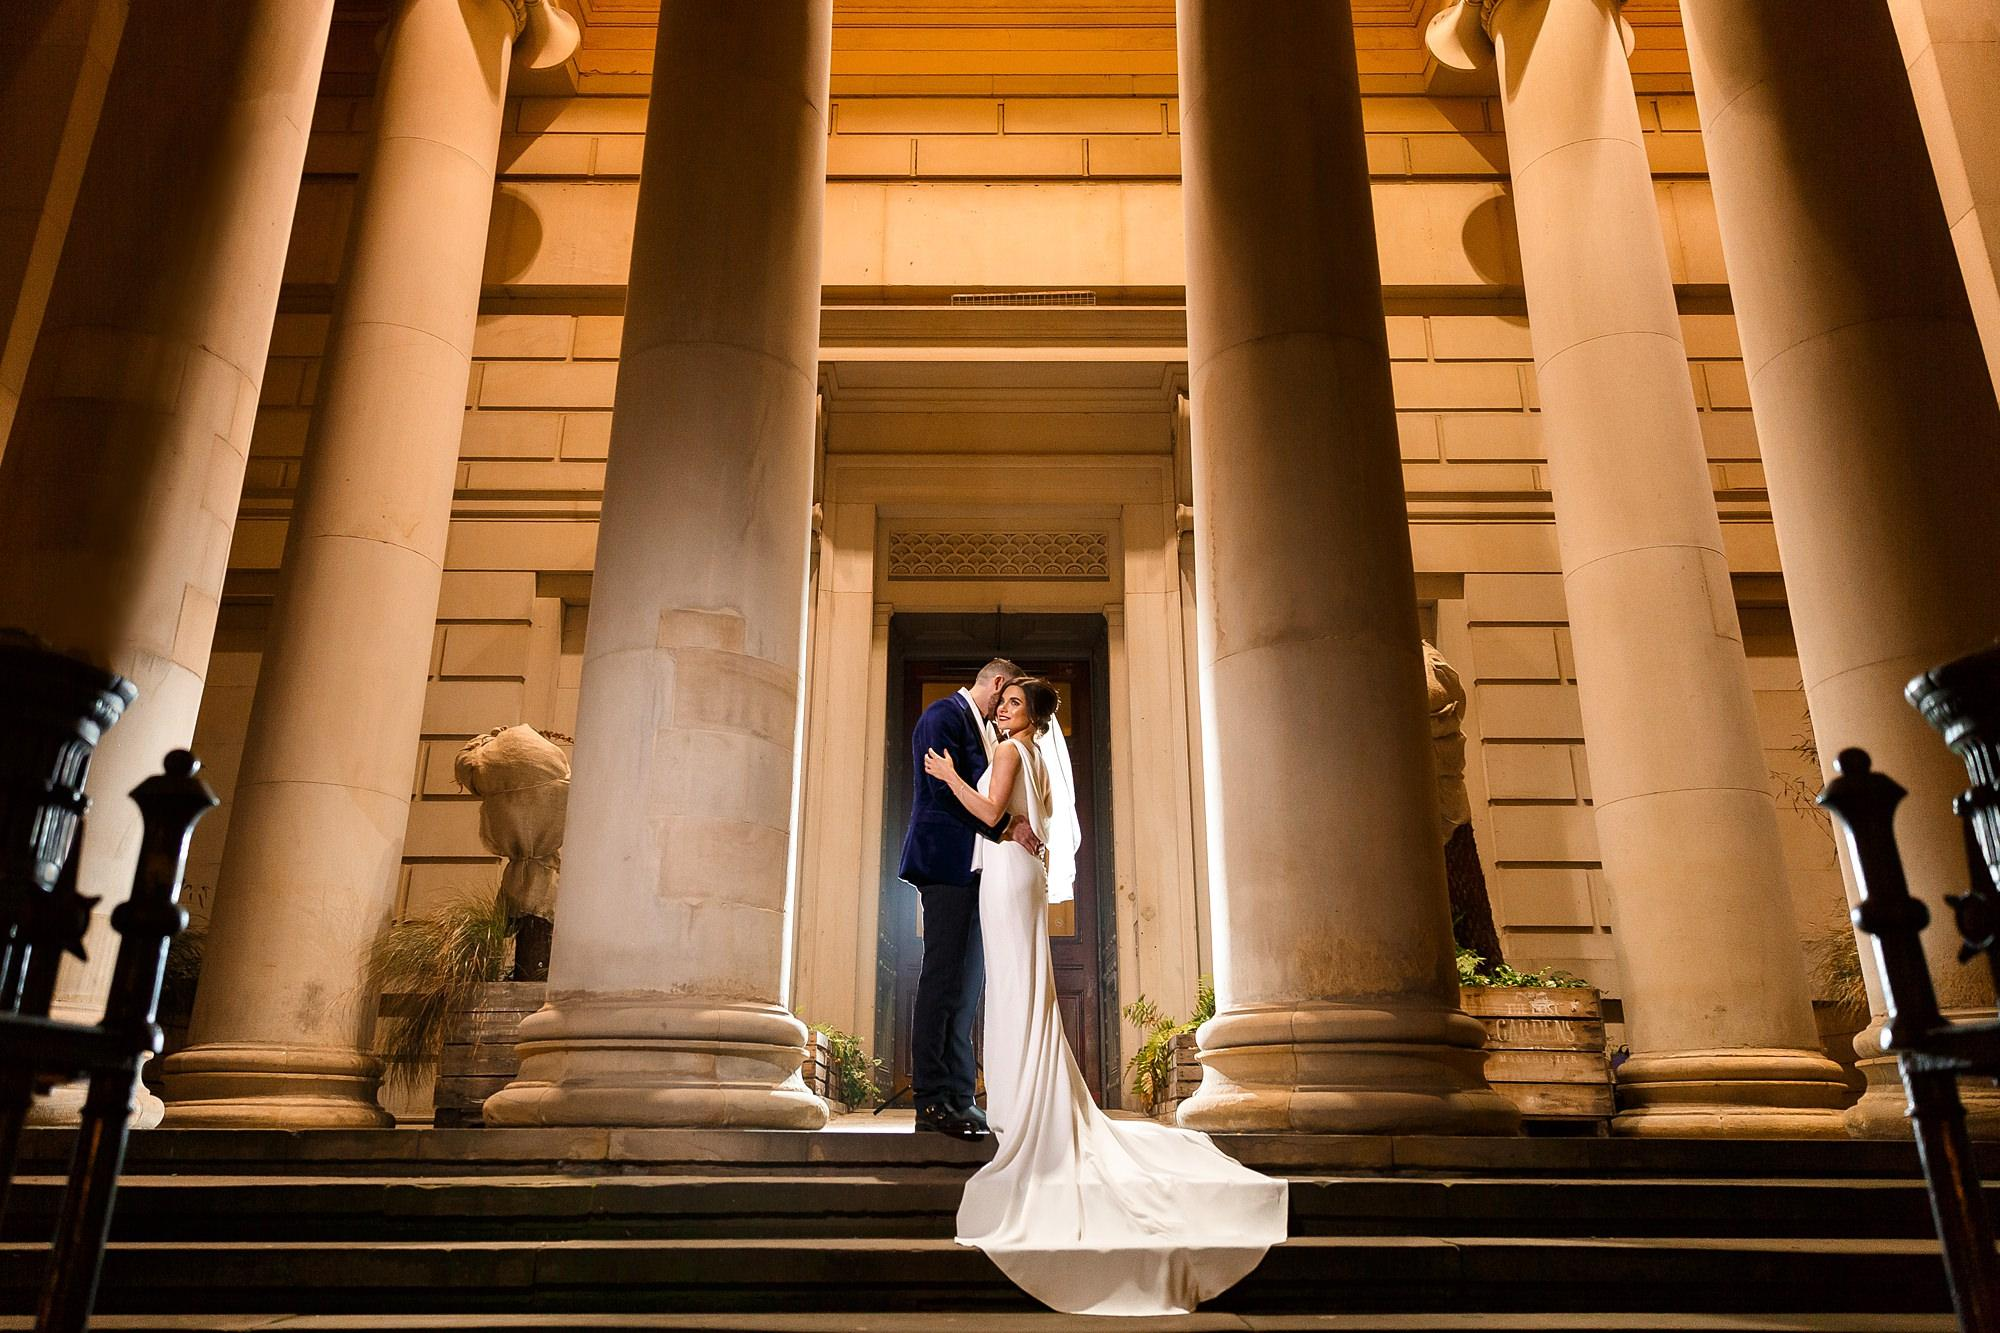 Bride and Groom at Manchester Art Gallery Wedding Venue